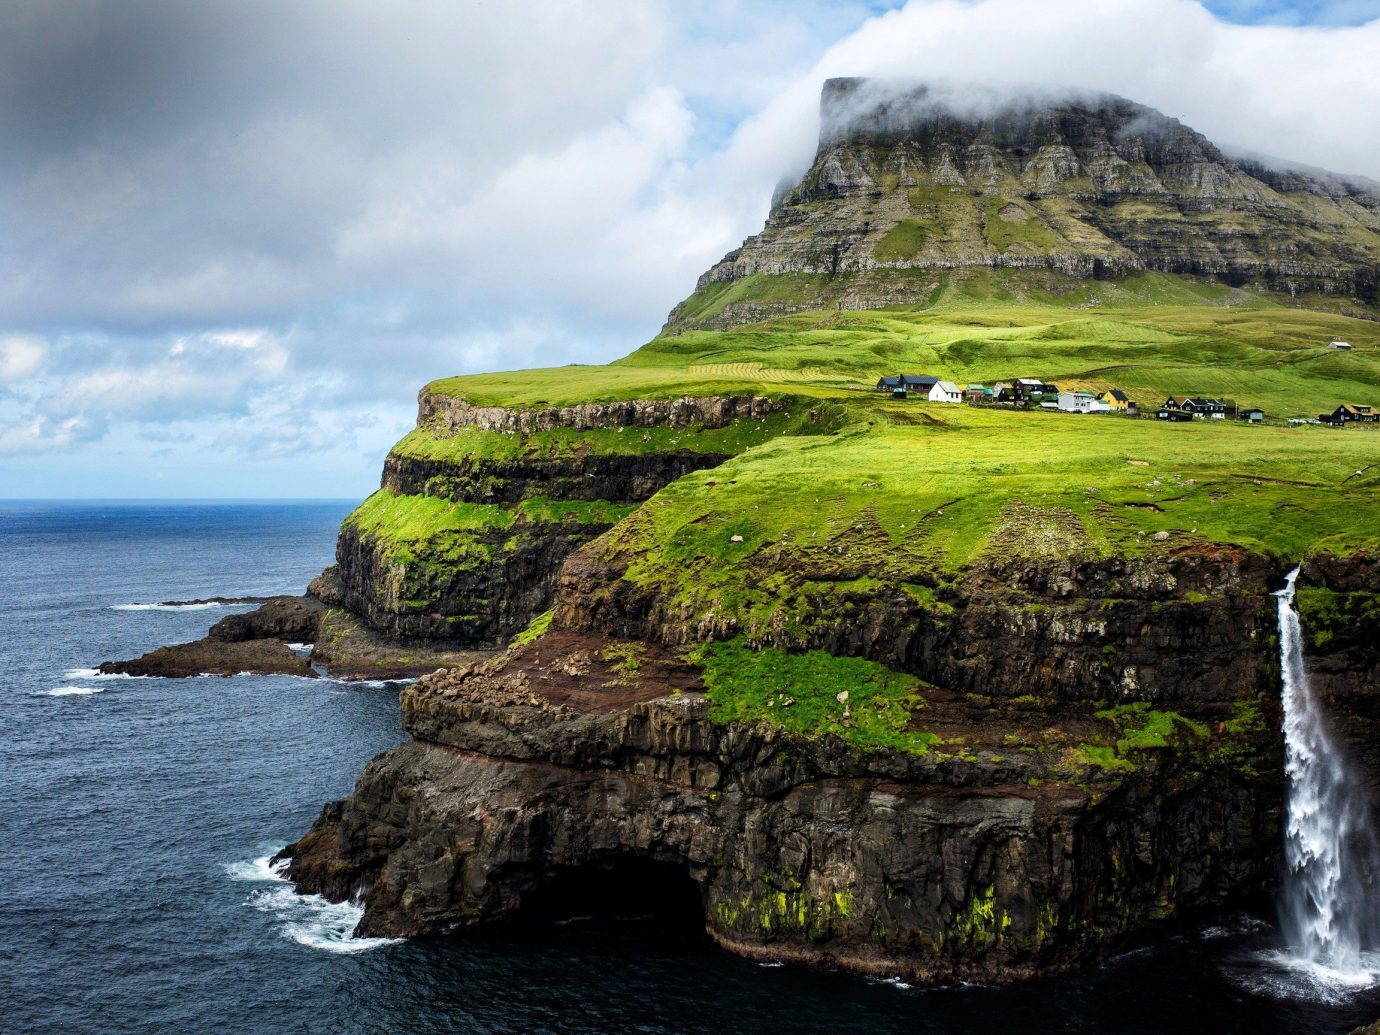 Trip Ideas Nature sky outdoor water mountain grass rock Coast geographical feature landform body of water Sea cliff Waterfall Ocean terrain islet landscape cape Island bay cove fjord hillside